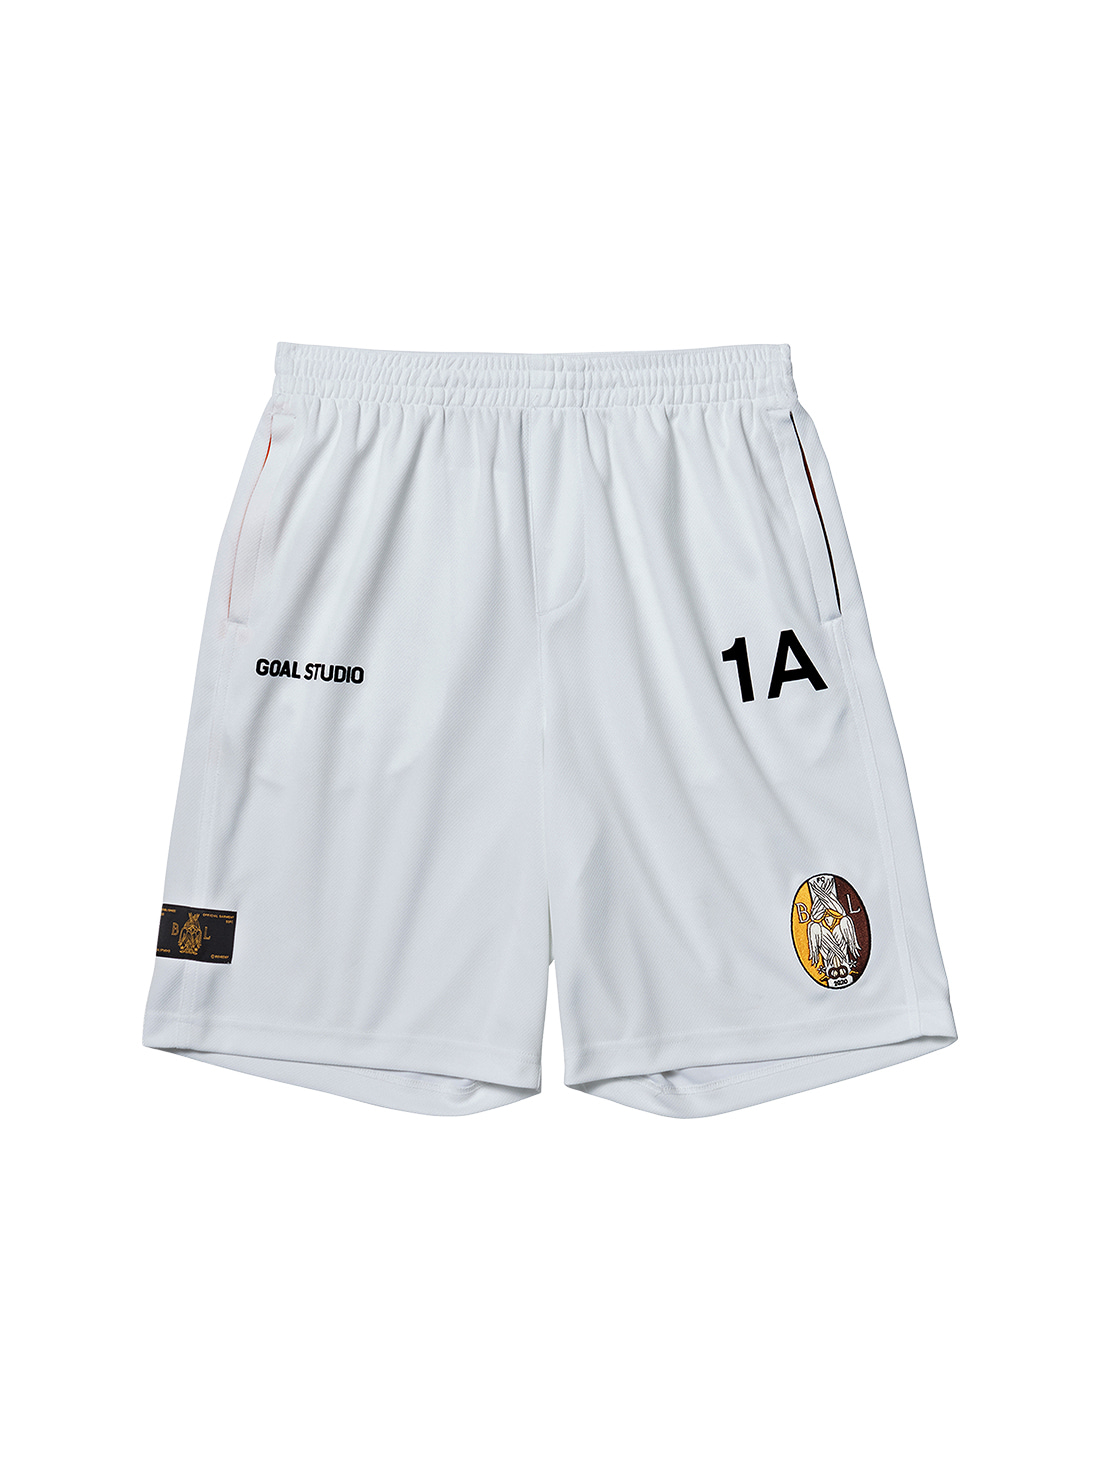 SSFC UNIFORM PANTS - WHITE(A)